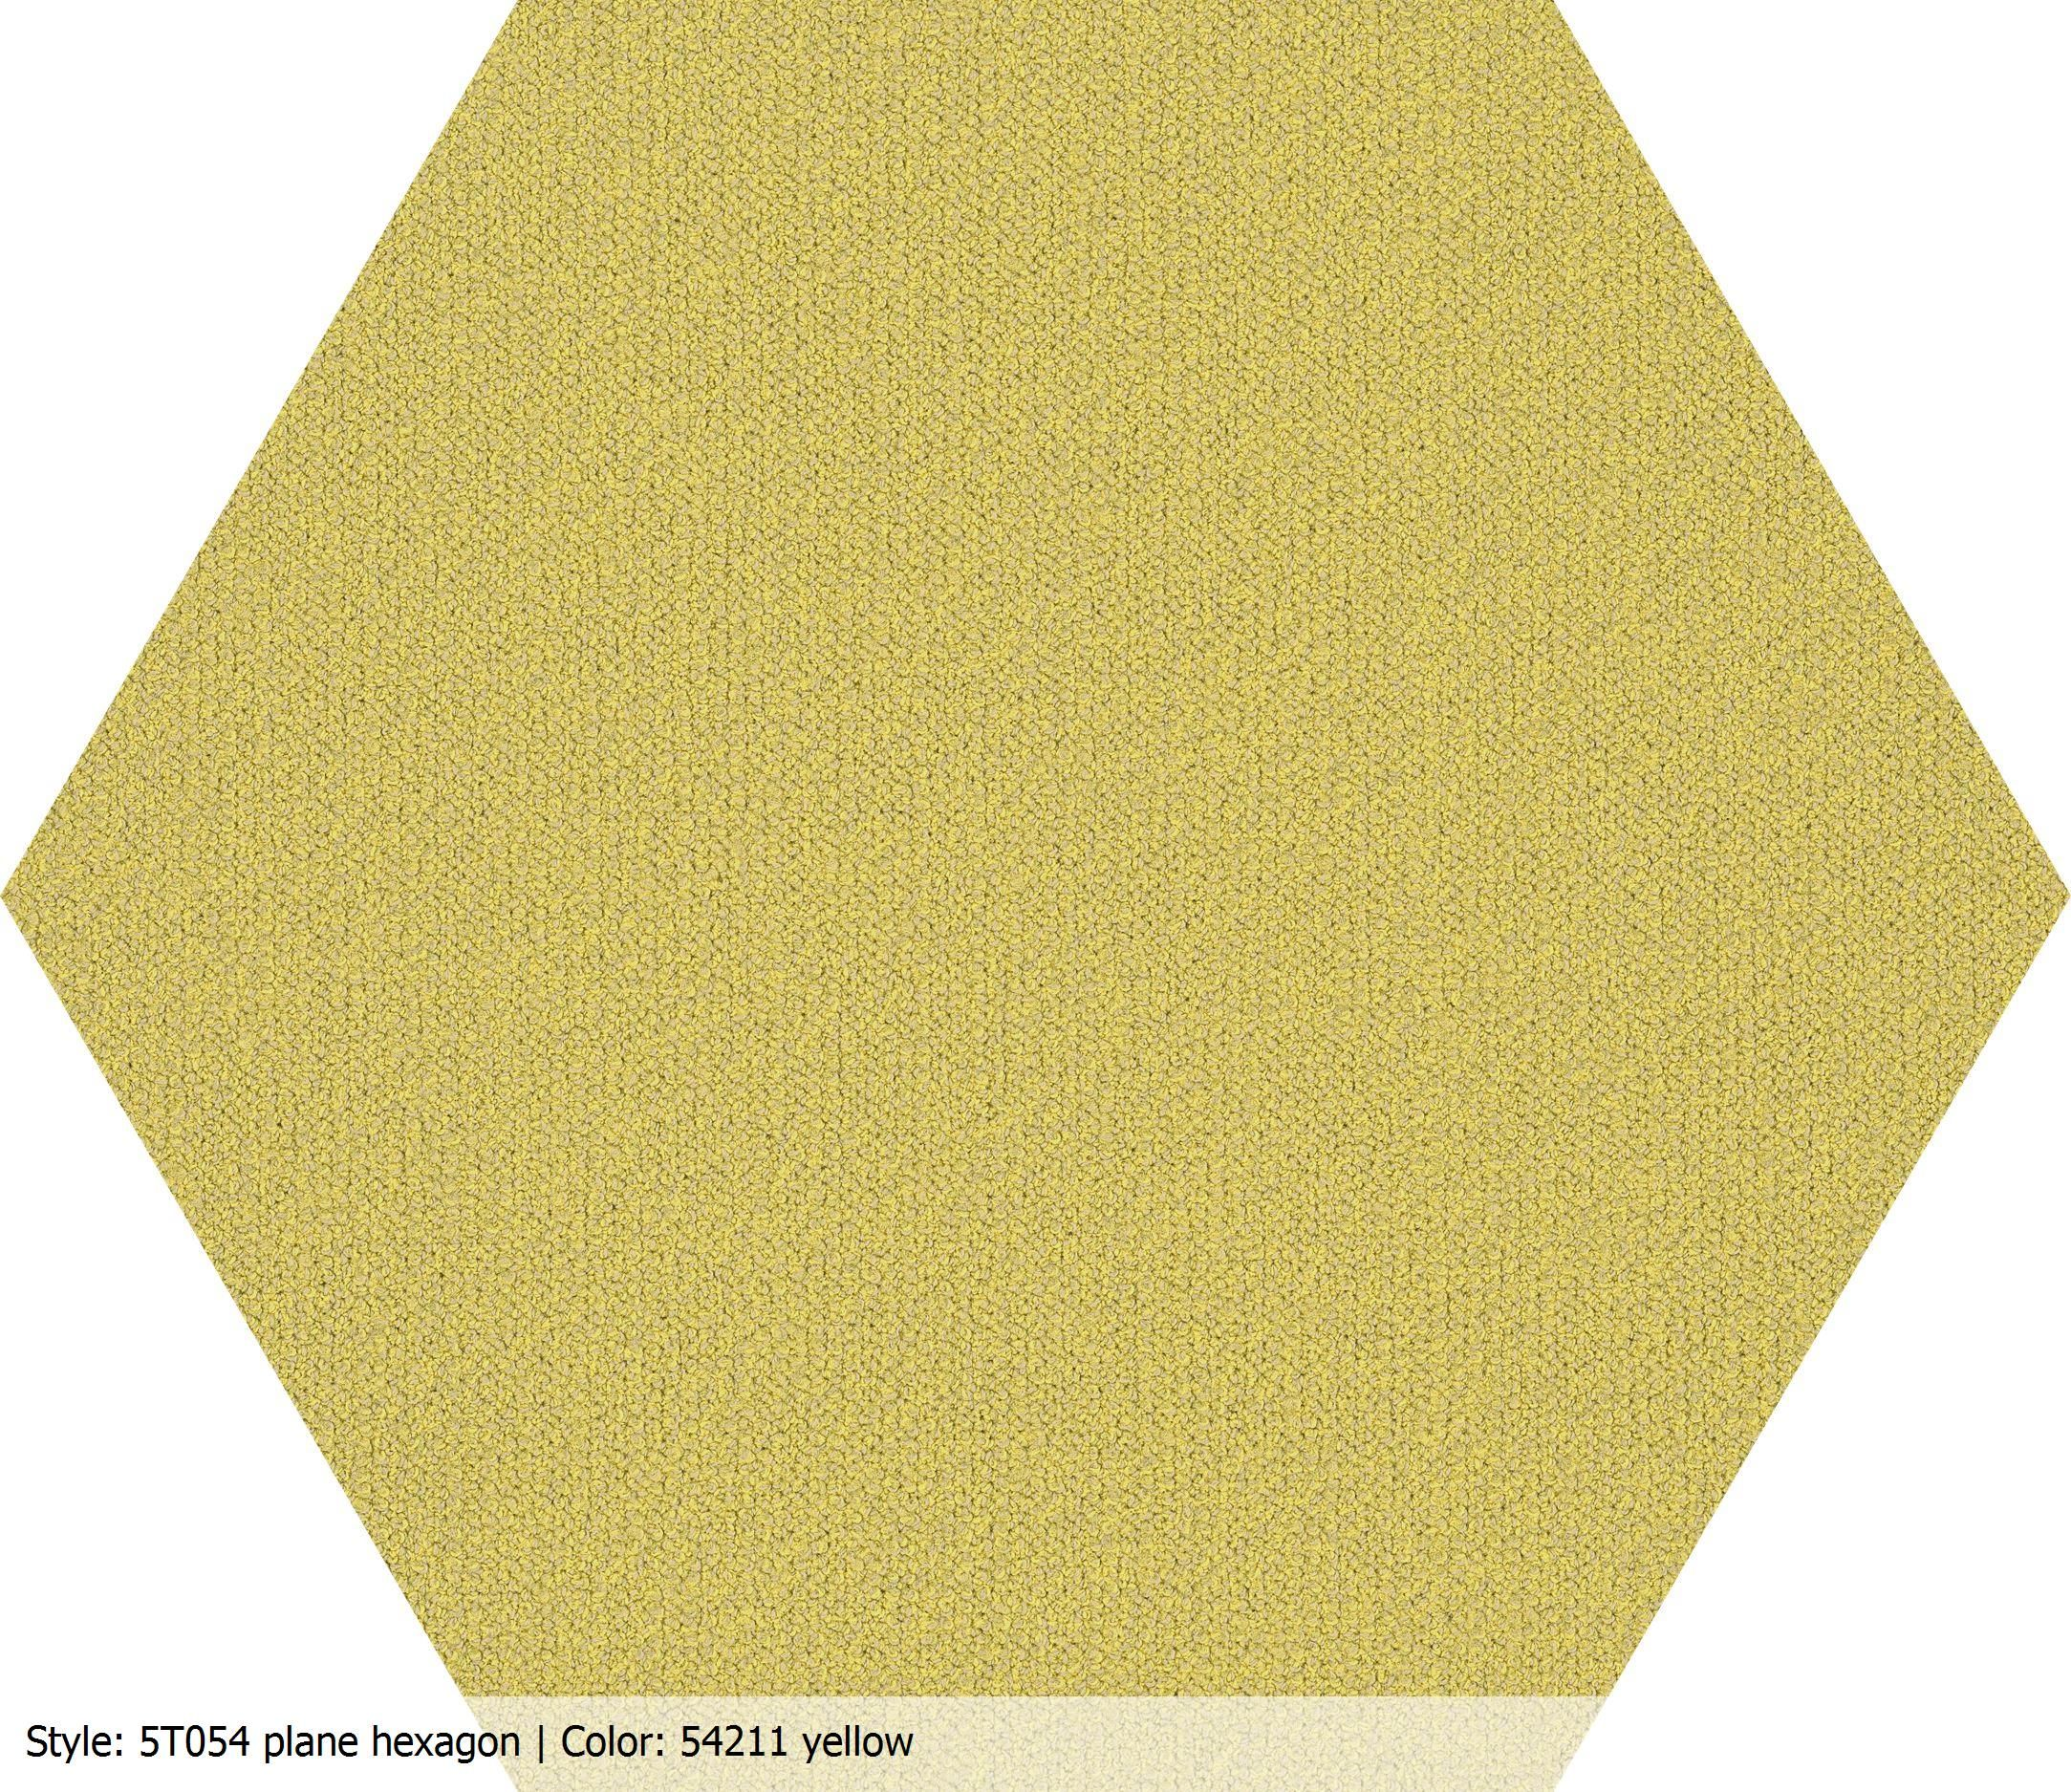 Carpet Accent Shaw Contract, Plain Hexagon  Yellow #54211